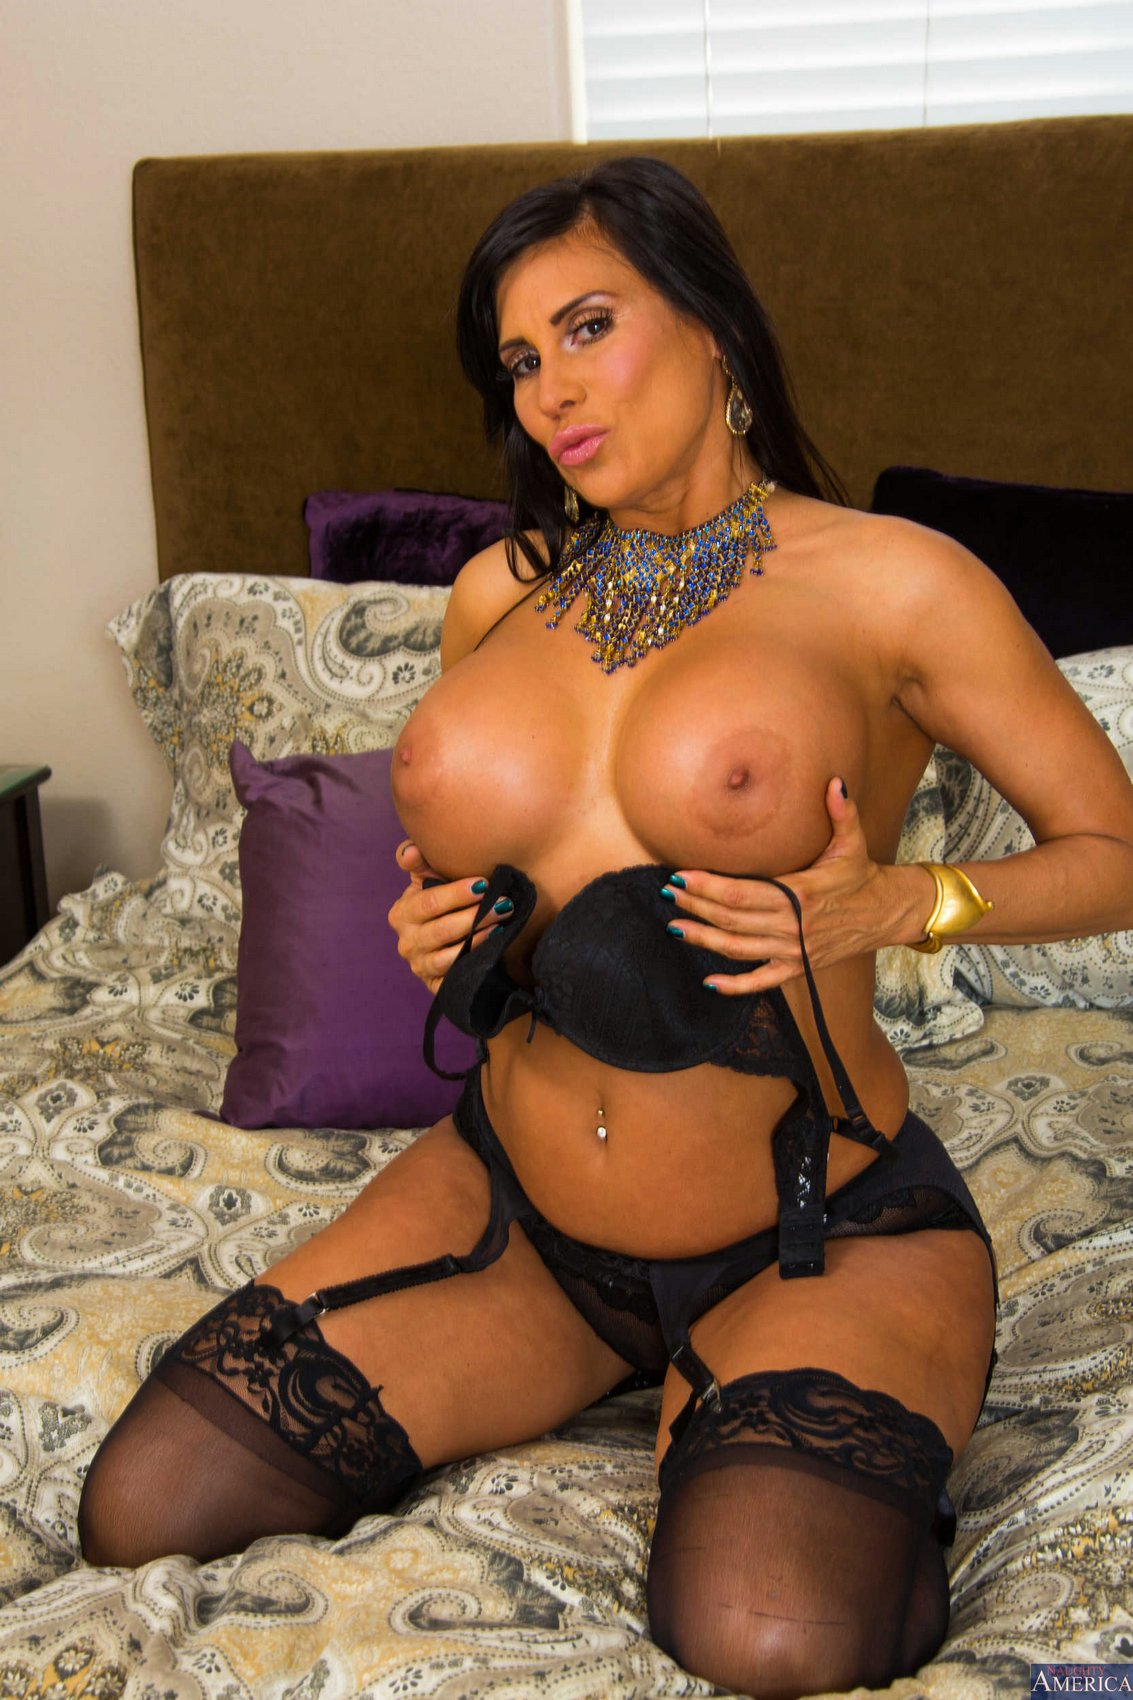 Pics of sheila marie porn star sorry, that